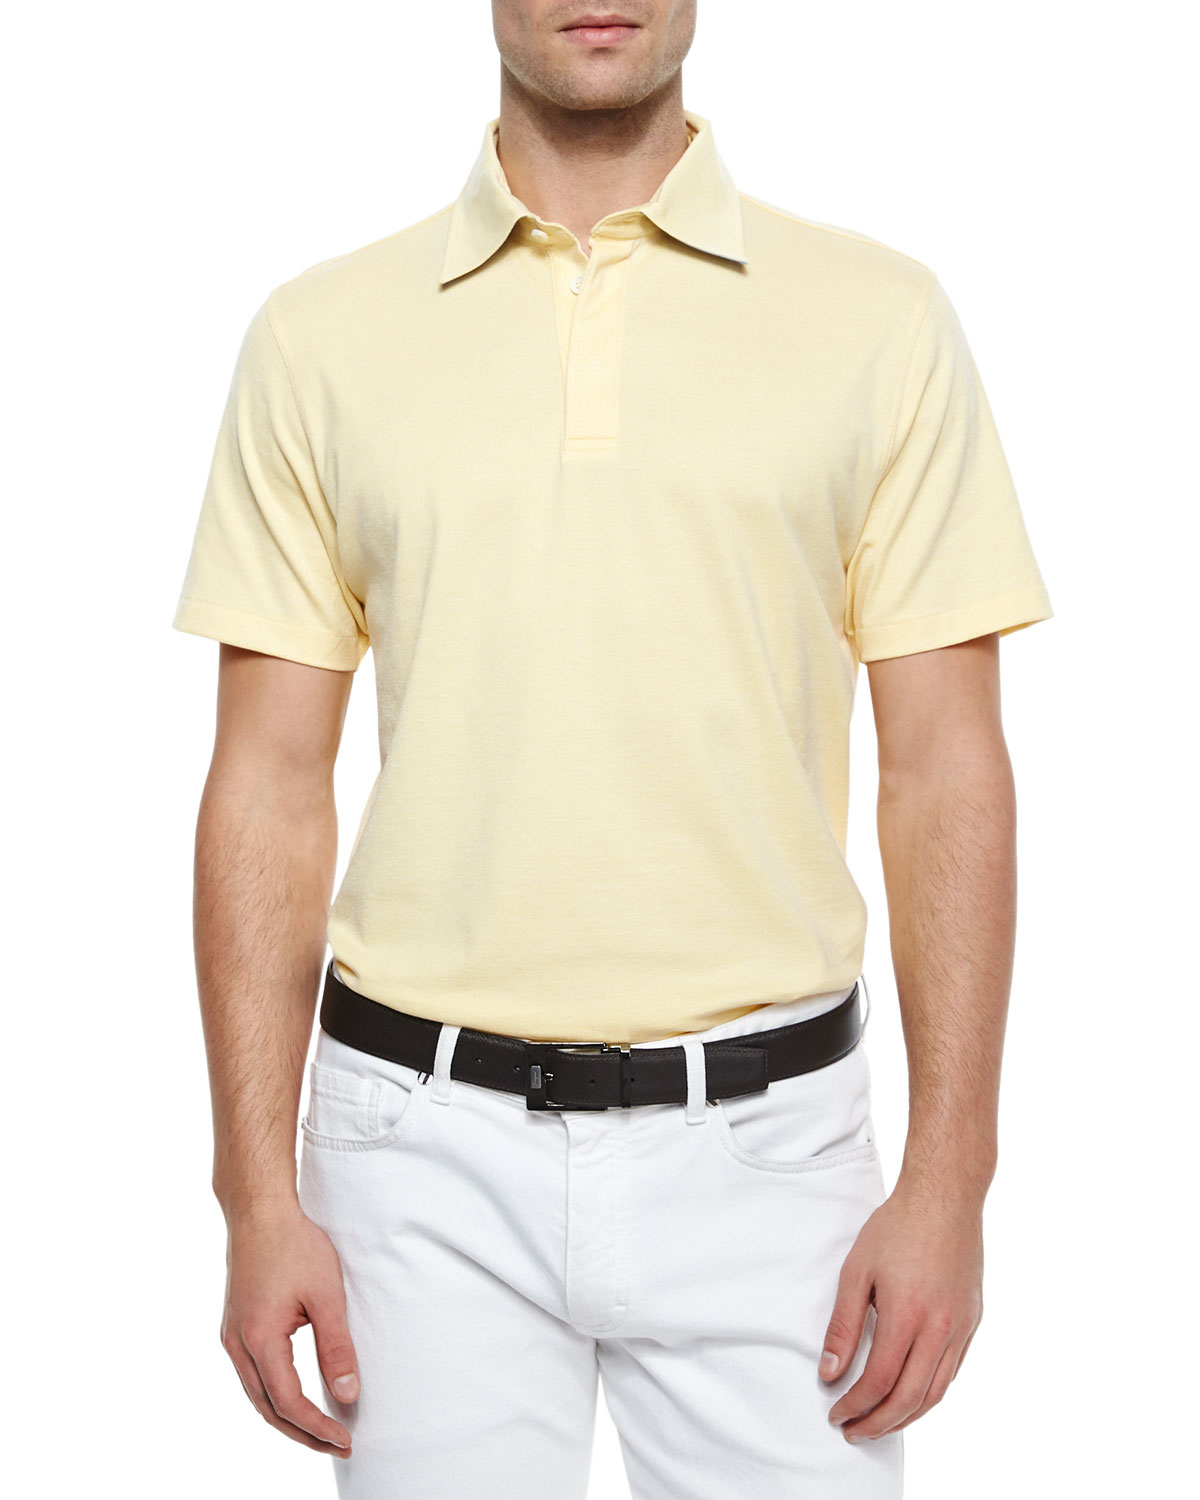 Ermenegildo zegna spread collar polo shirt in natural for for Men s spread collar shirts